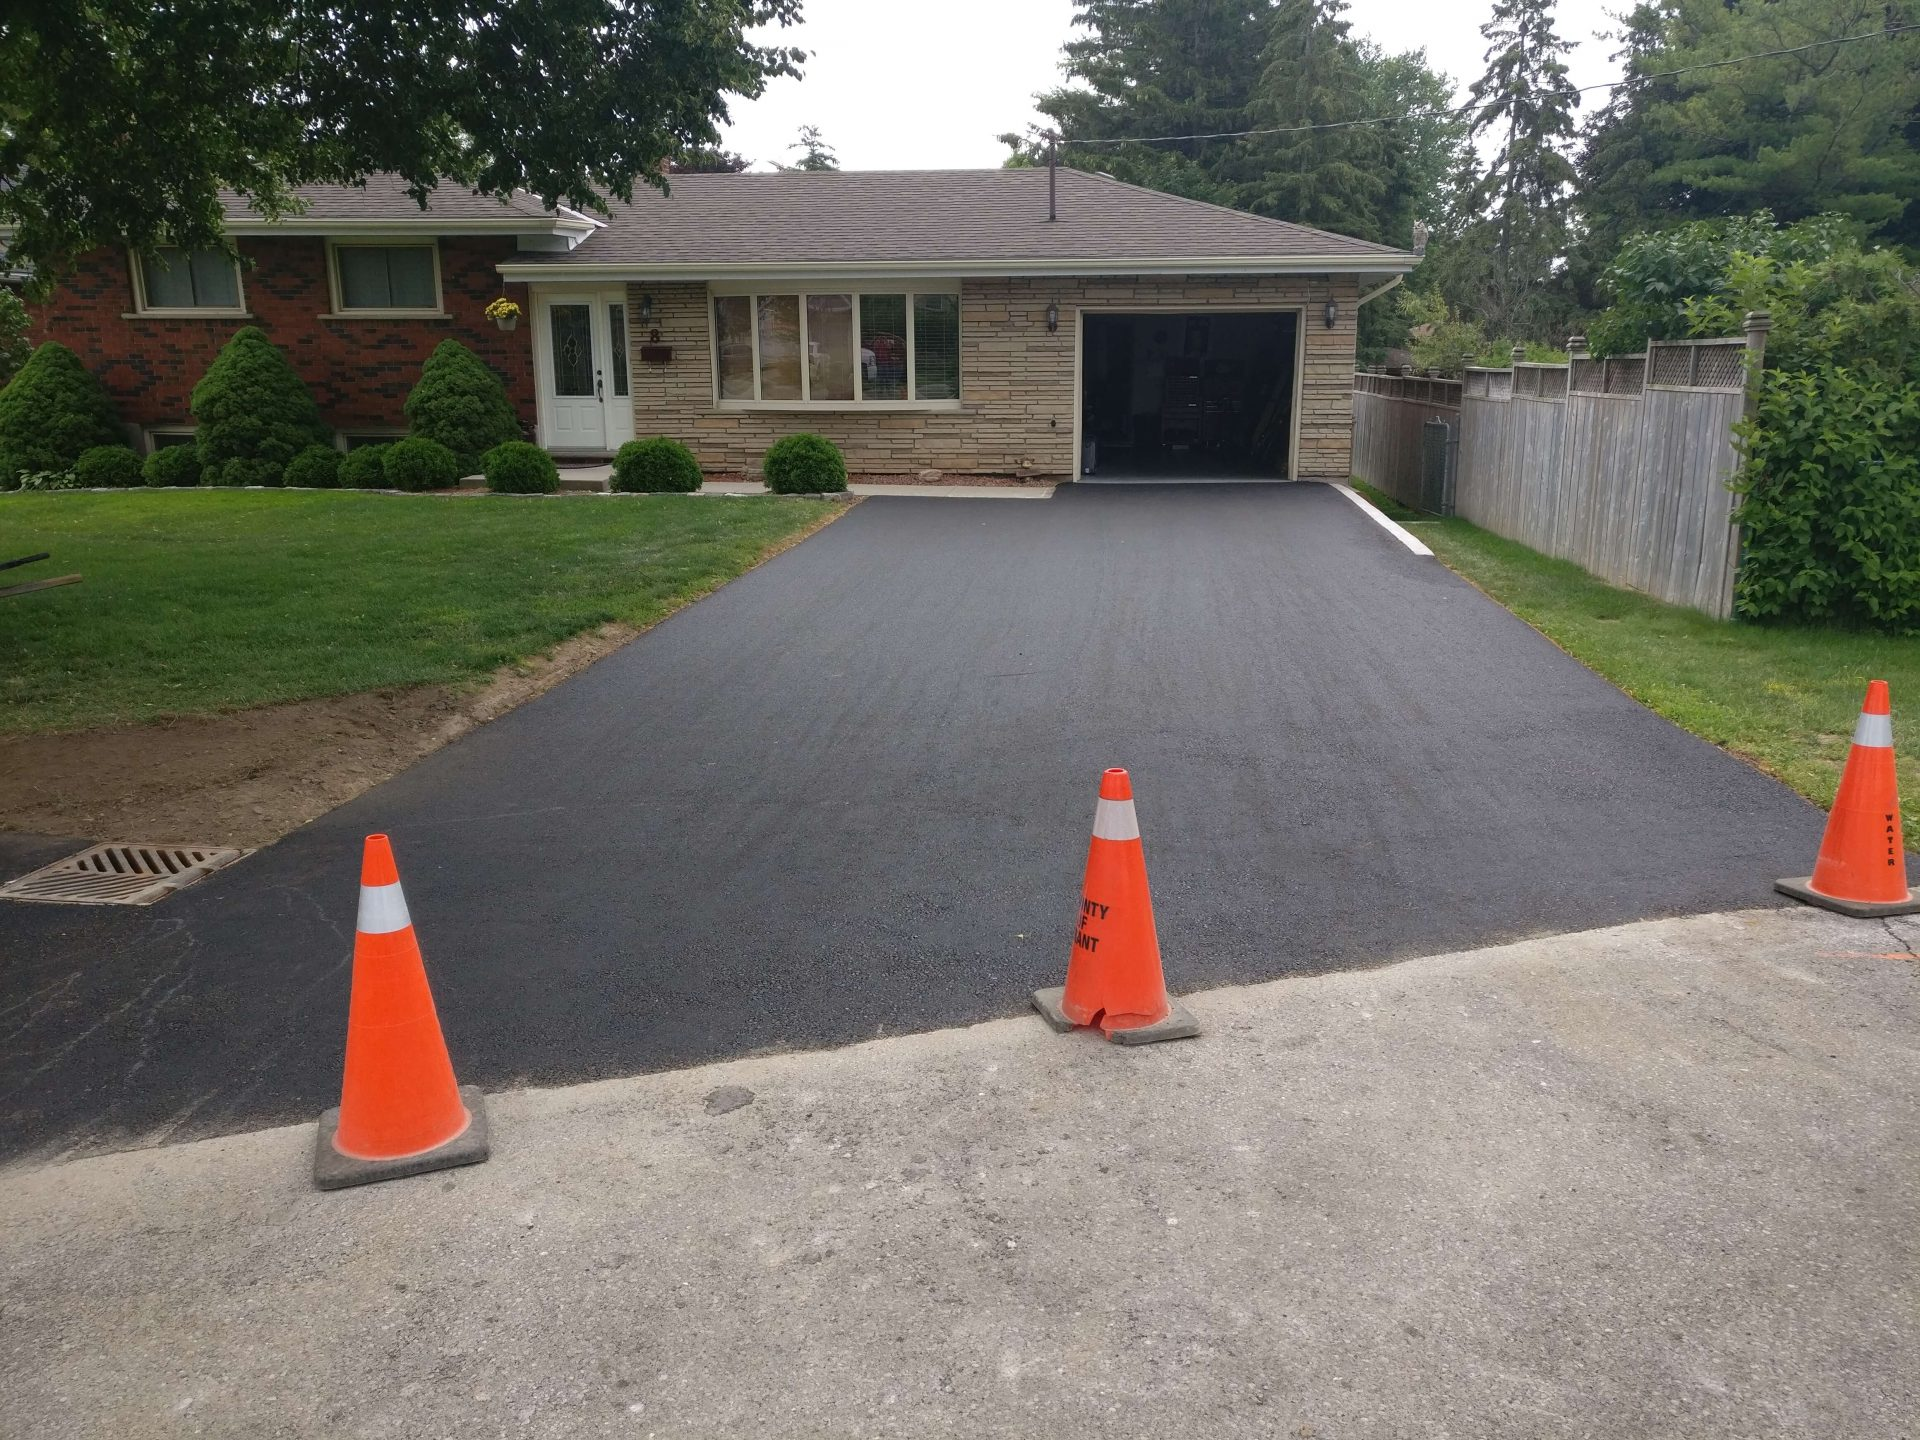 Finished driveway blocked by pylons